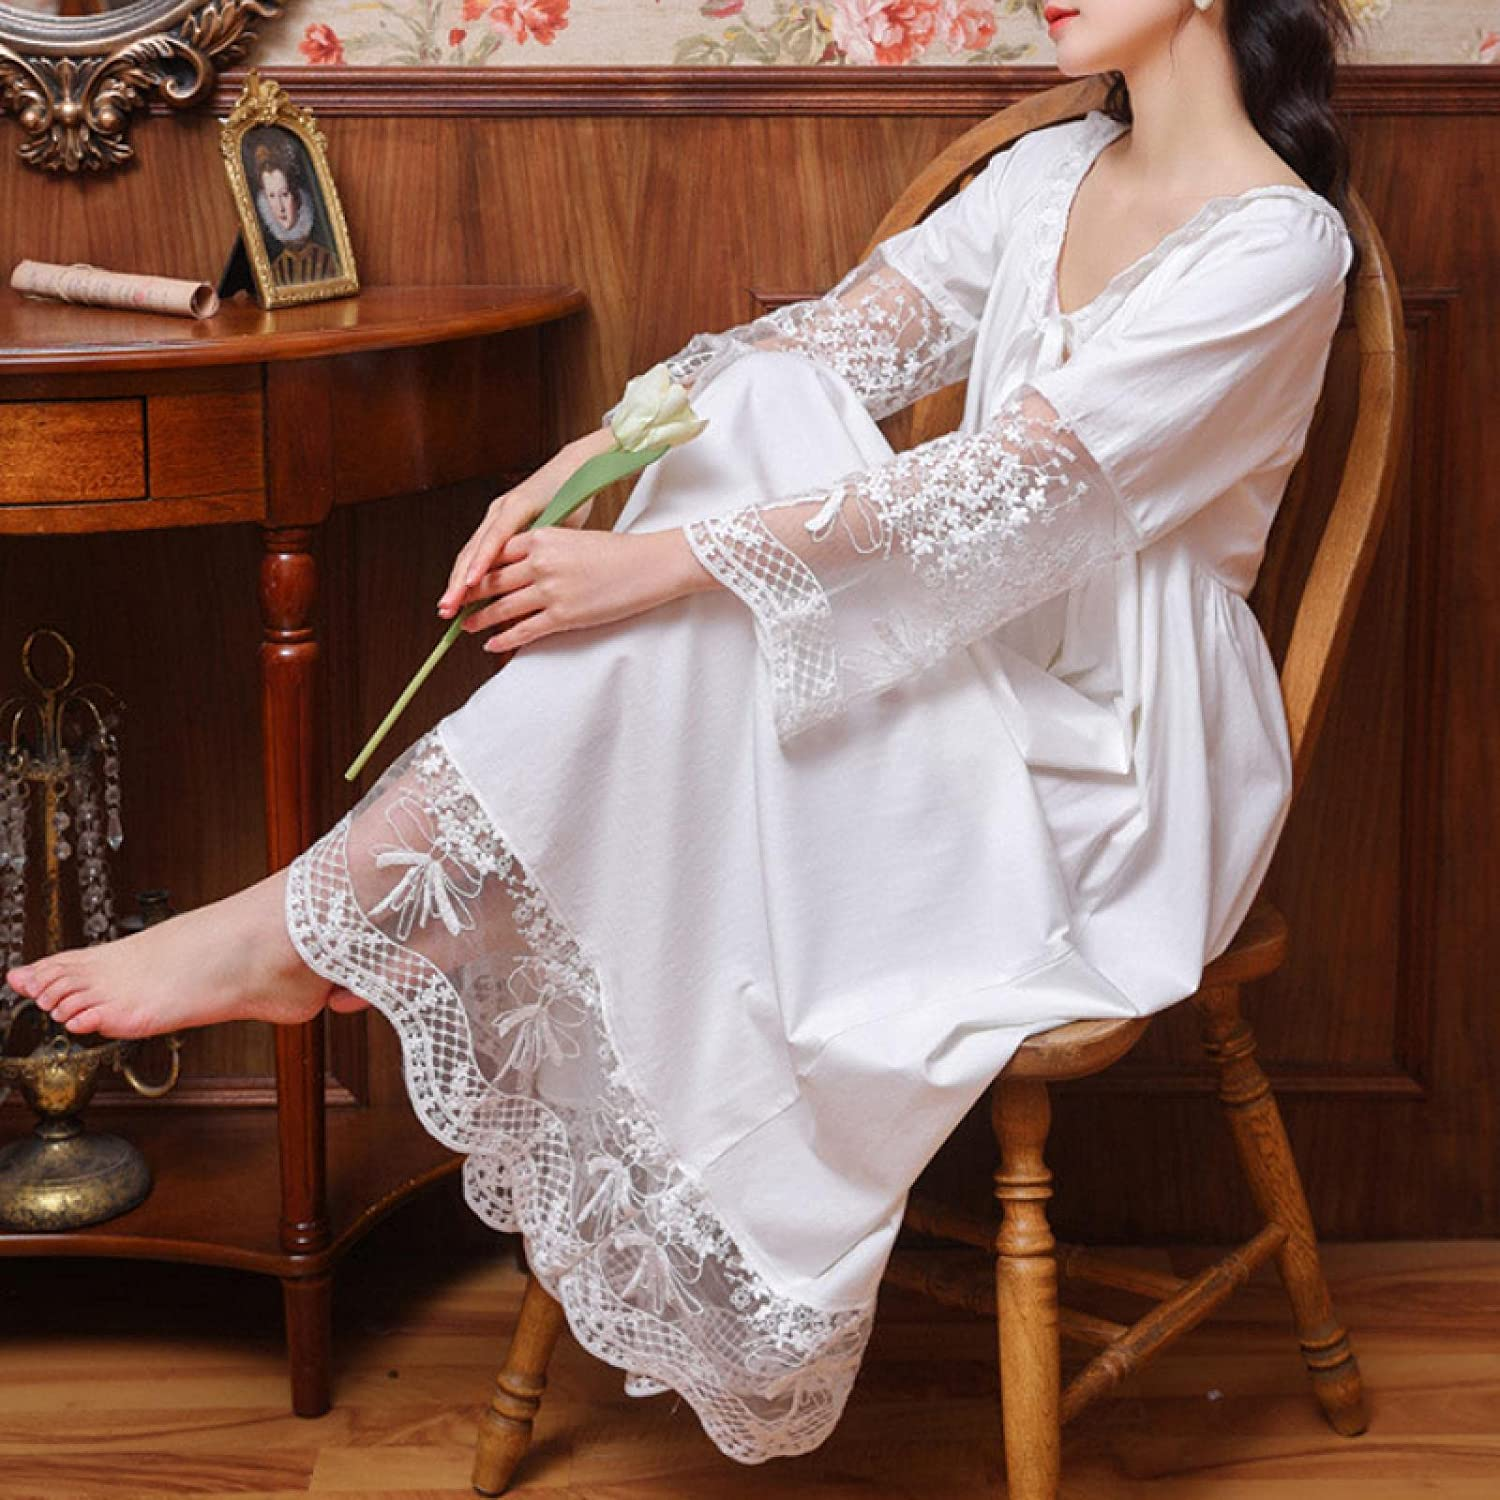 STJDM Nightgown Long Night Dress Vintage Overseas parallel import Be super welcome regular item Women White Embroidery